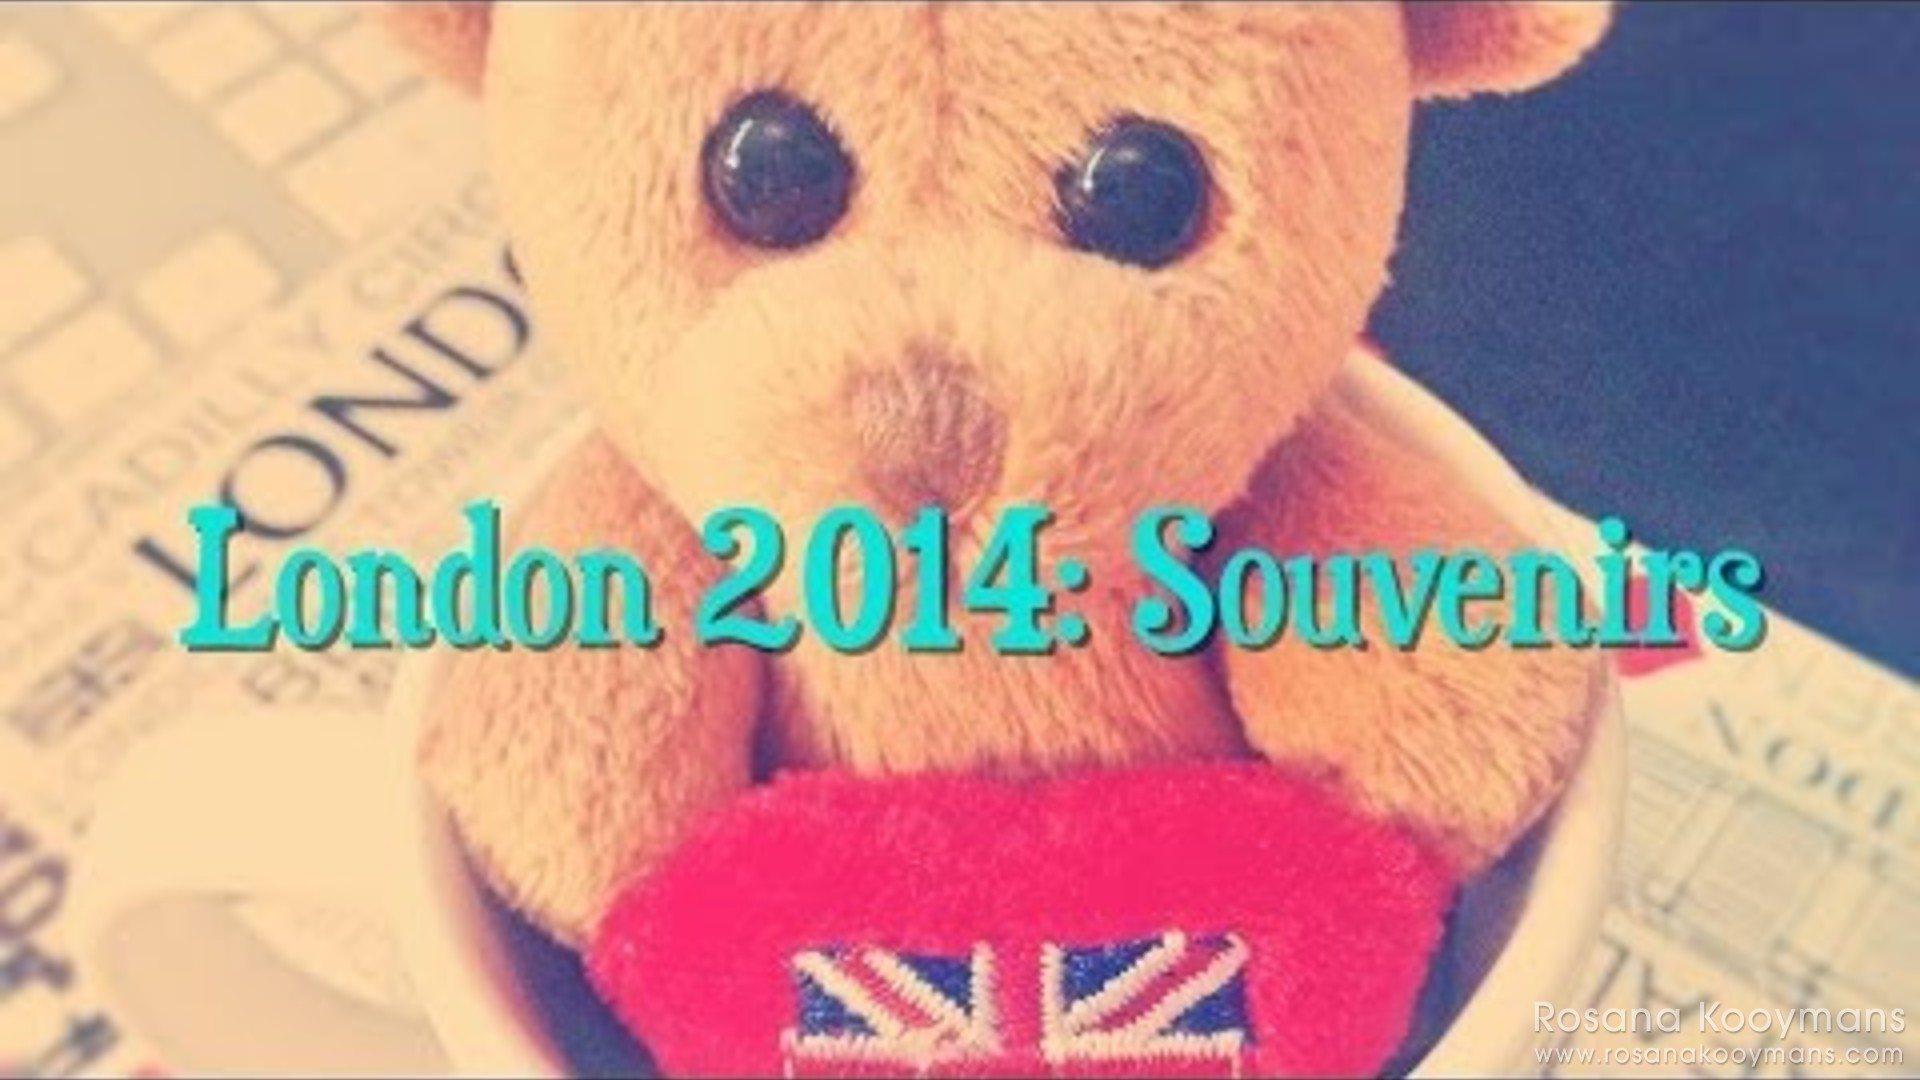 London 2014: Souvenirs Vlog!